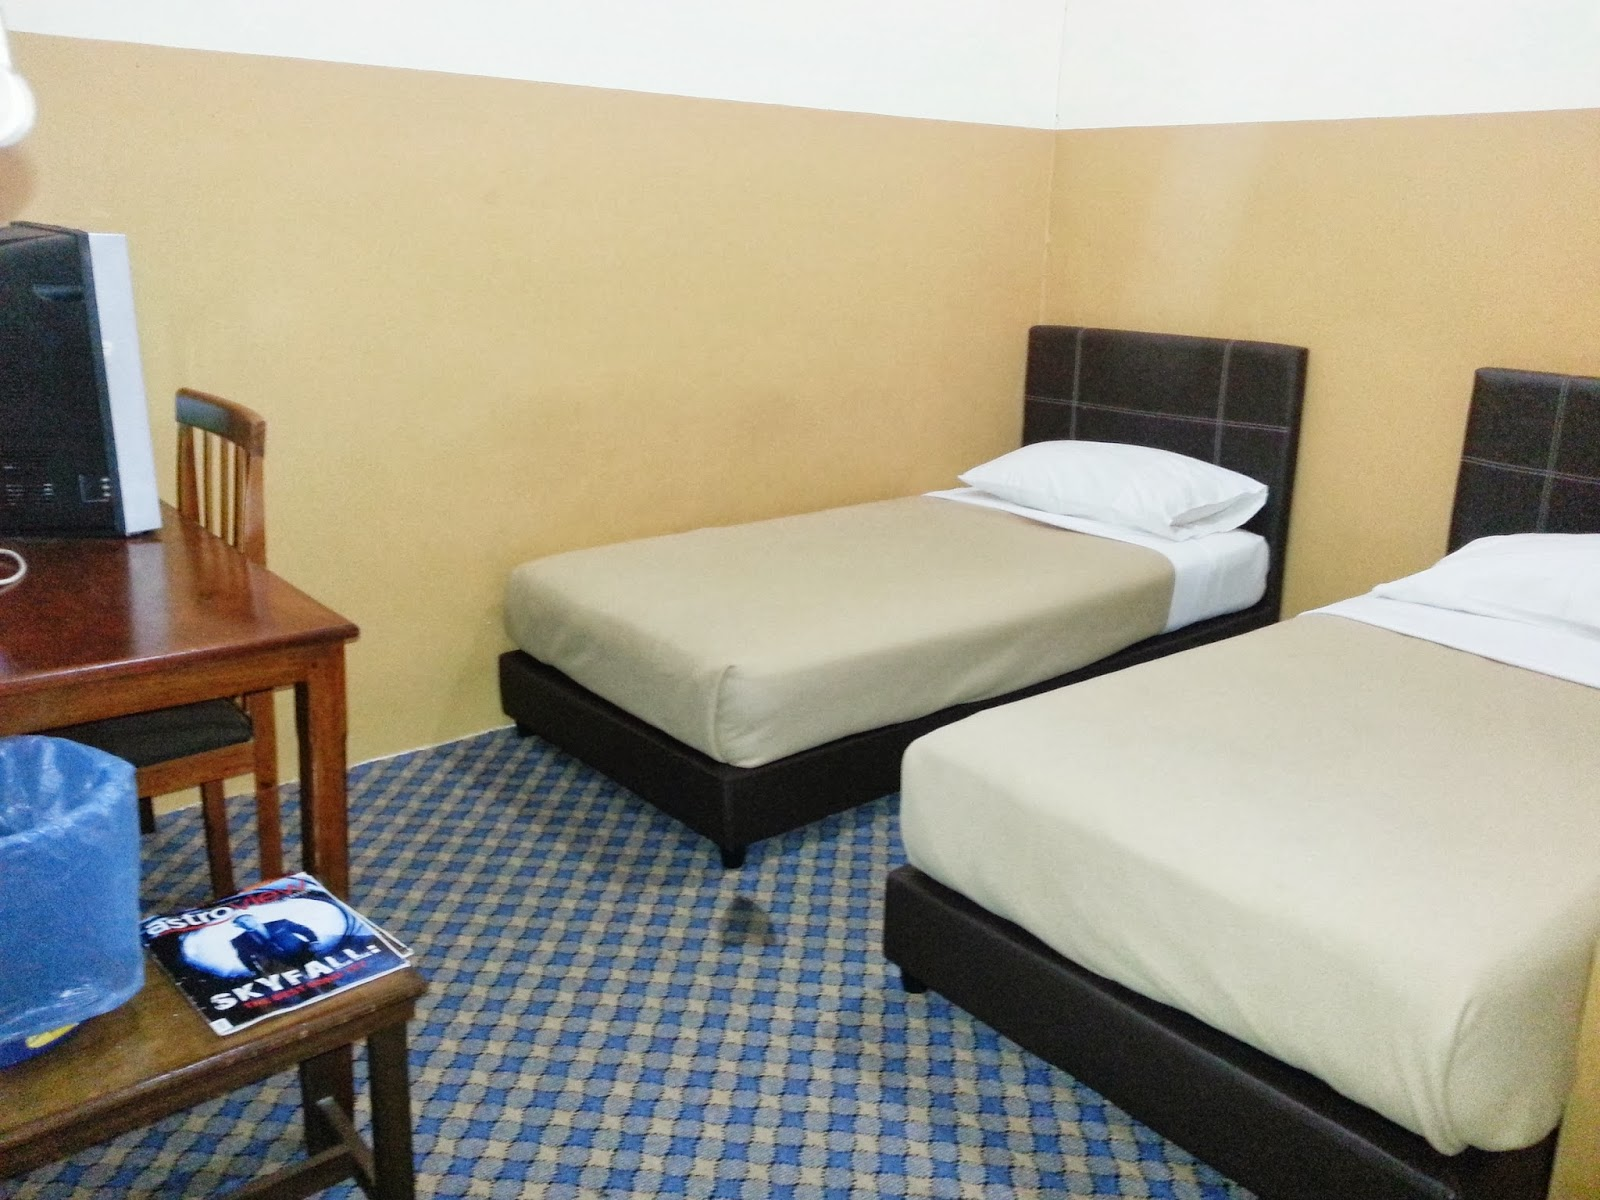 Hotel Tropika Room Rates